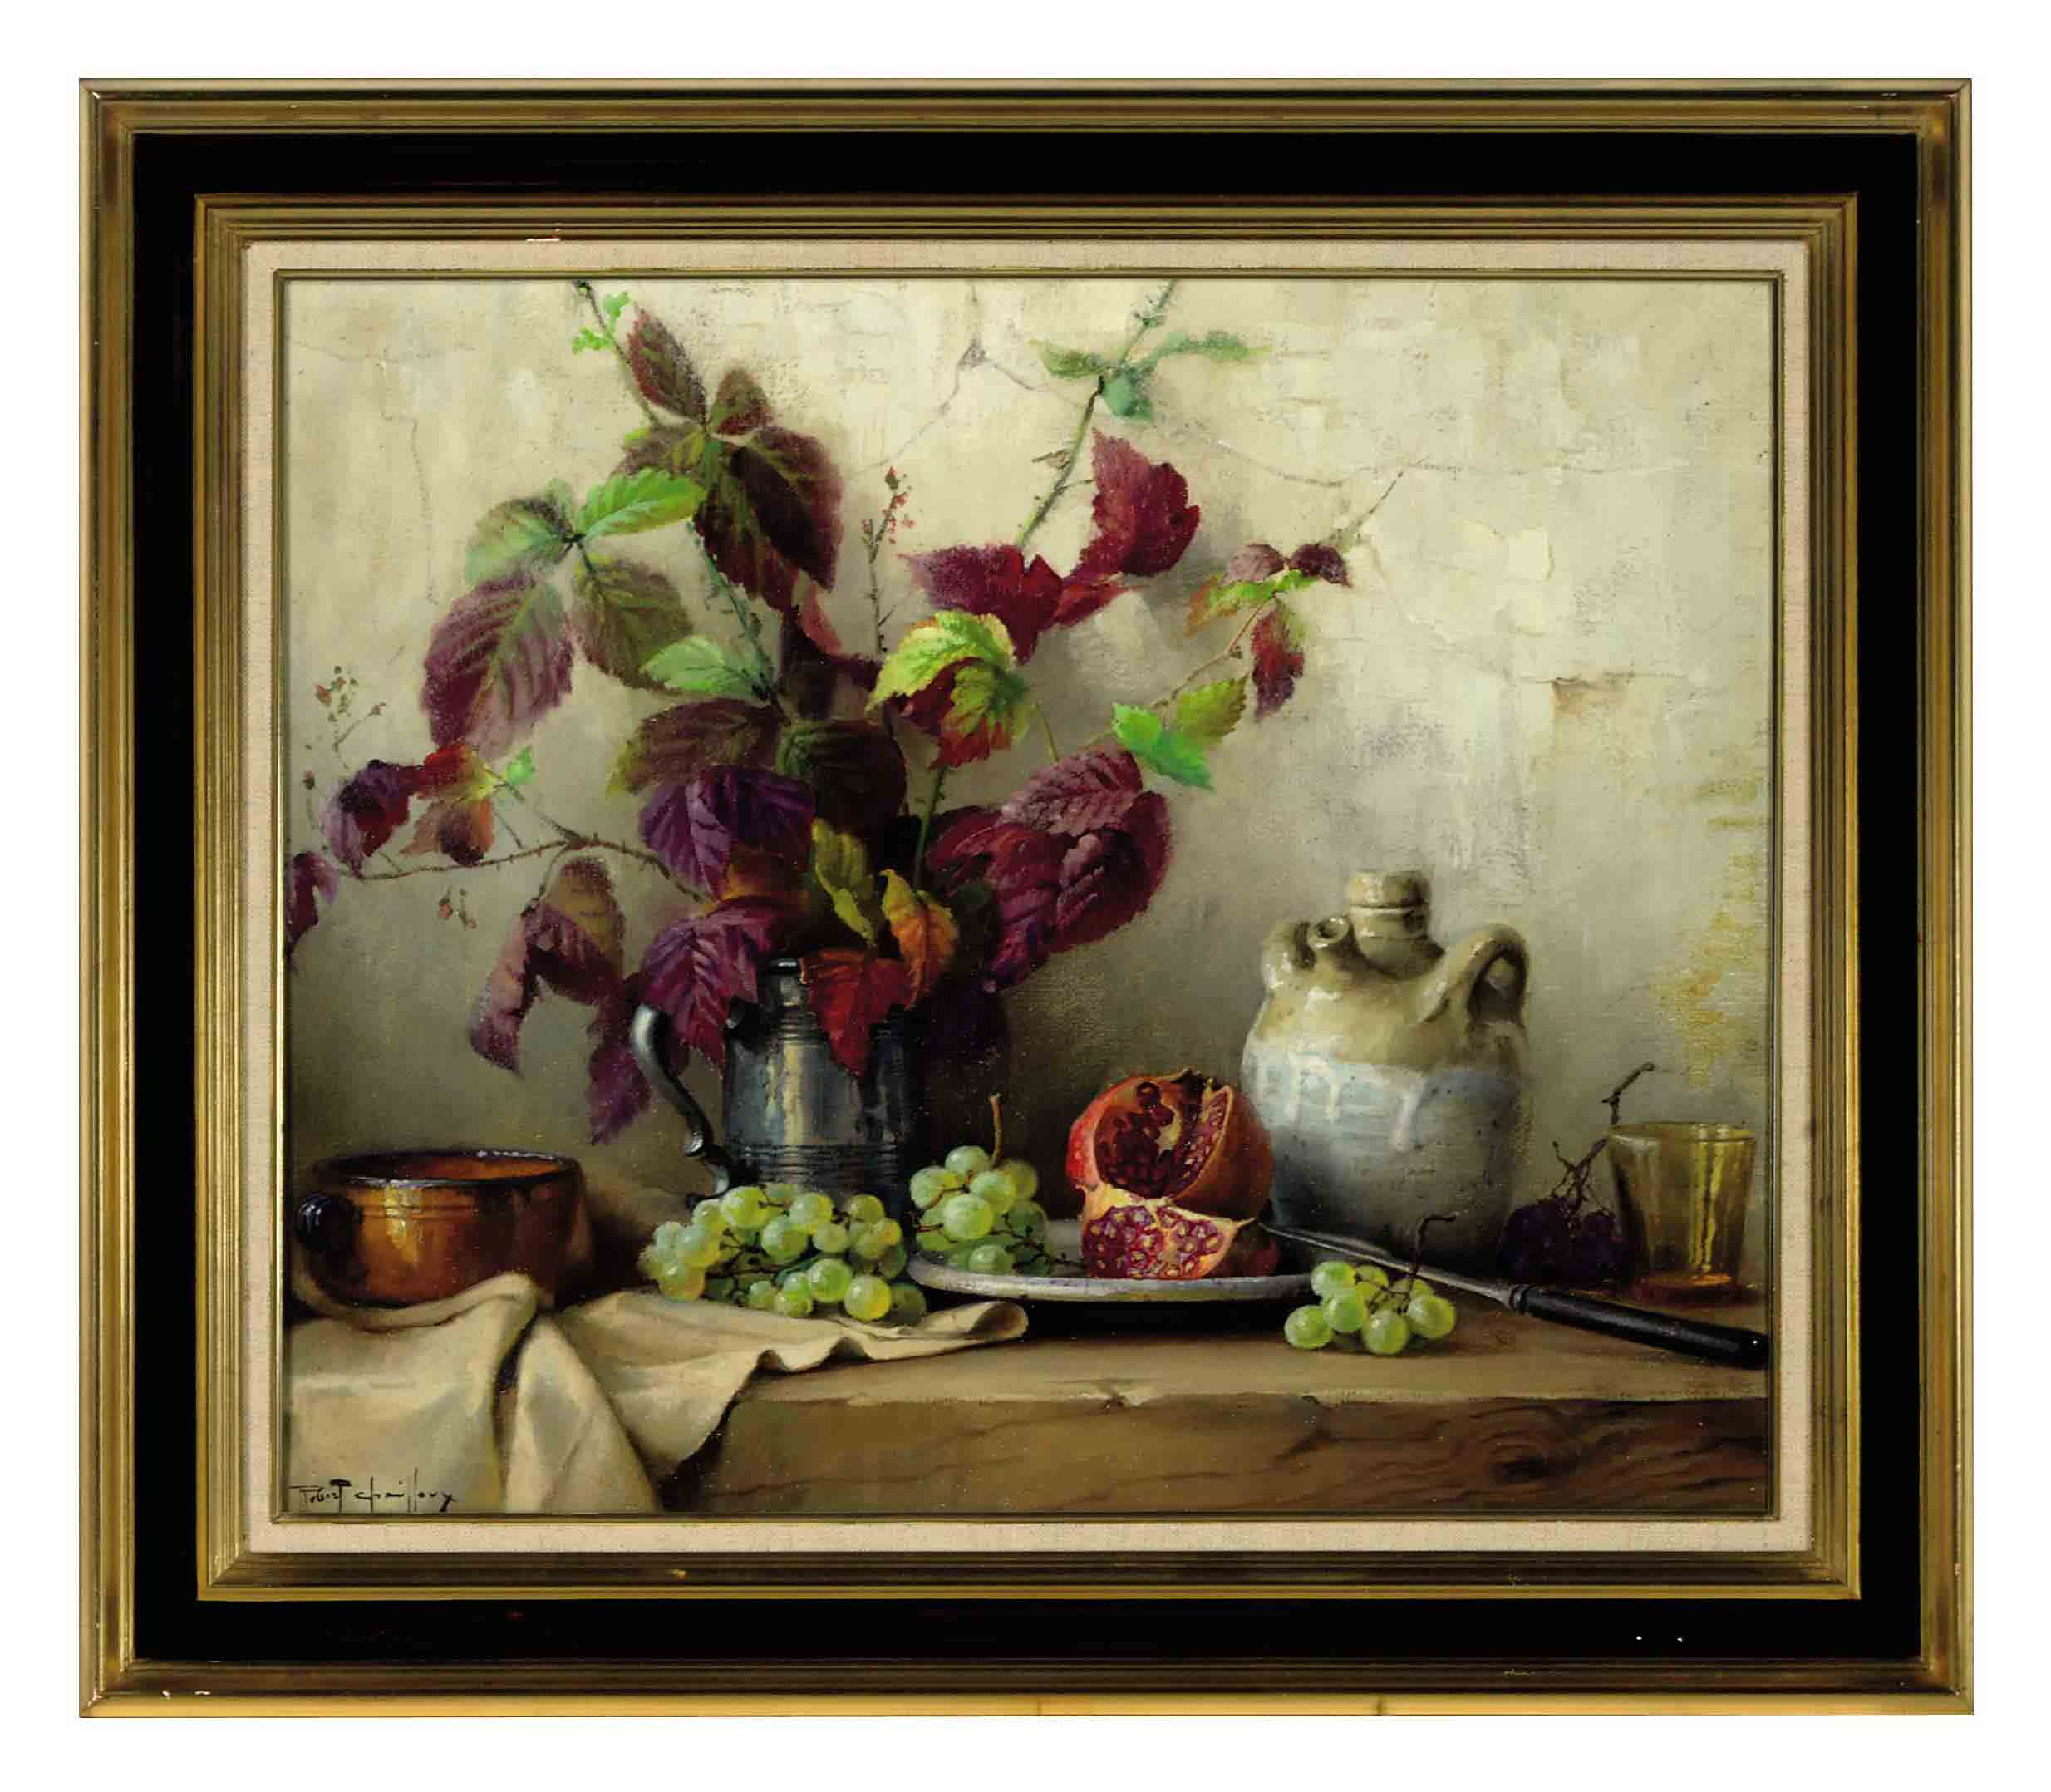 Still life of a pitcher holding autumn leaves and a pomegranate and grapes on a ledge